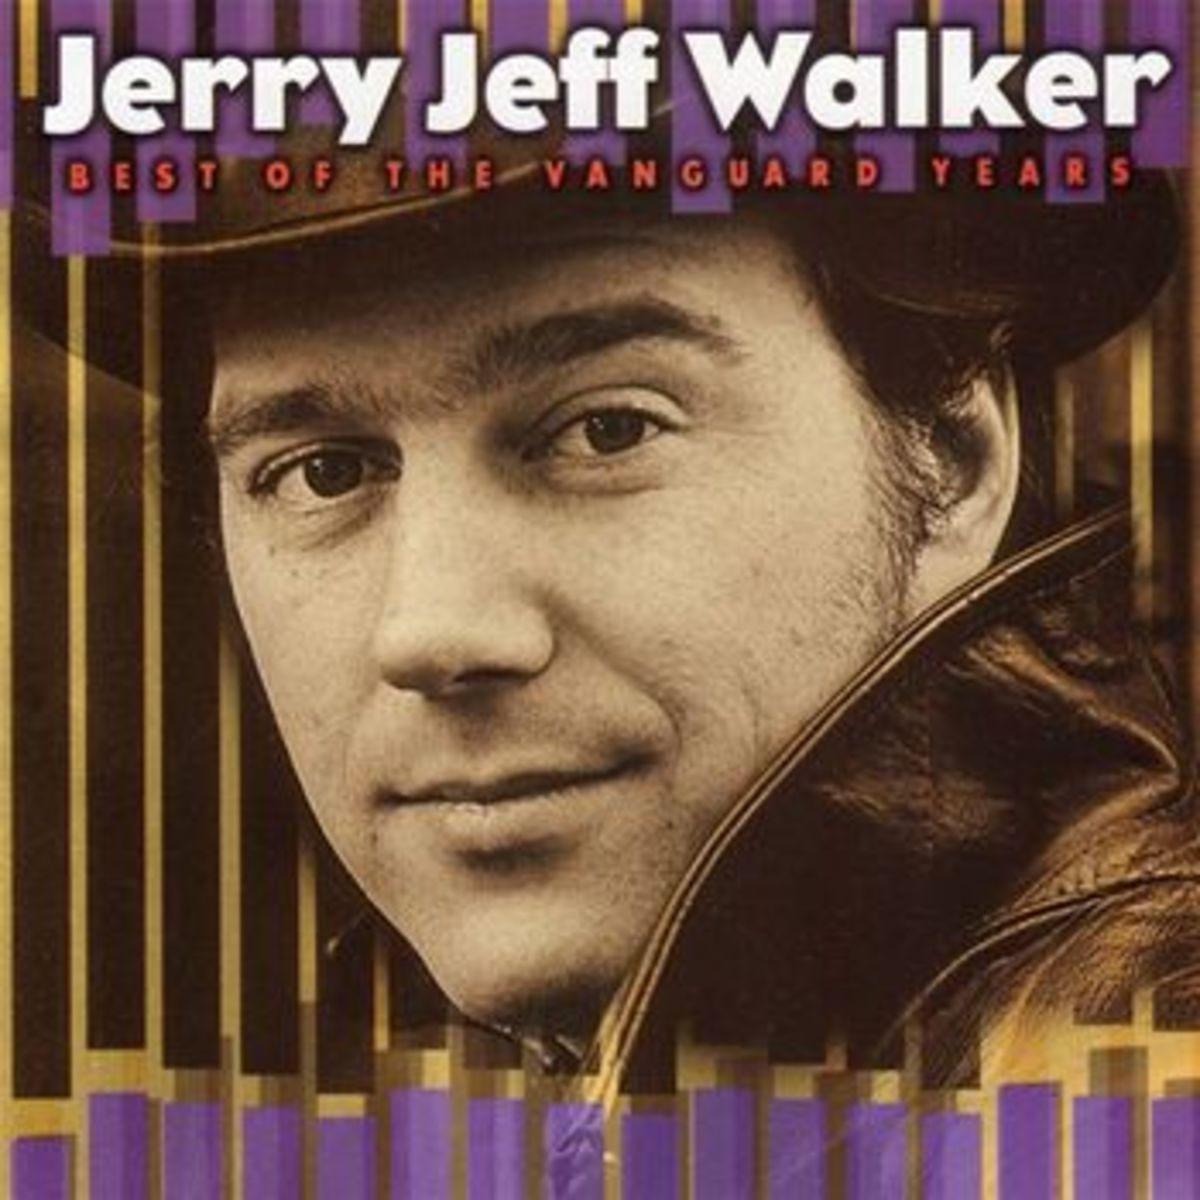 Originally from New York, we Texans have officially adopted Jerry Jeff Walker as one of our own.